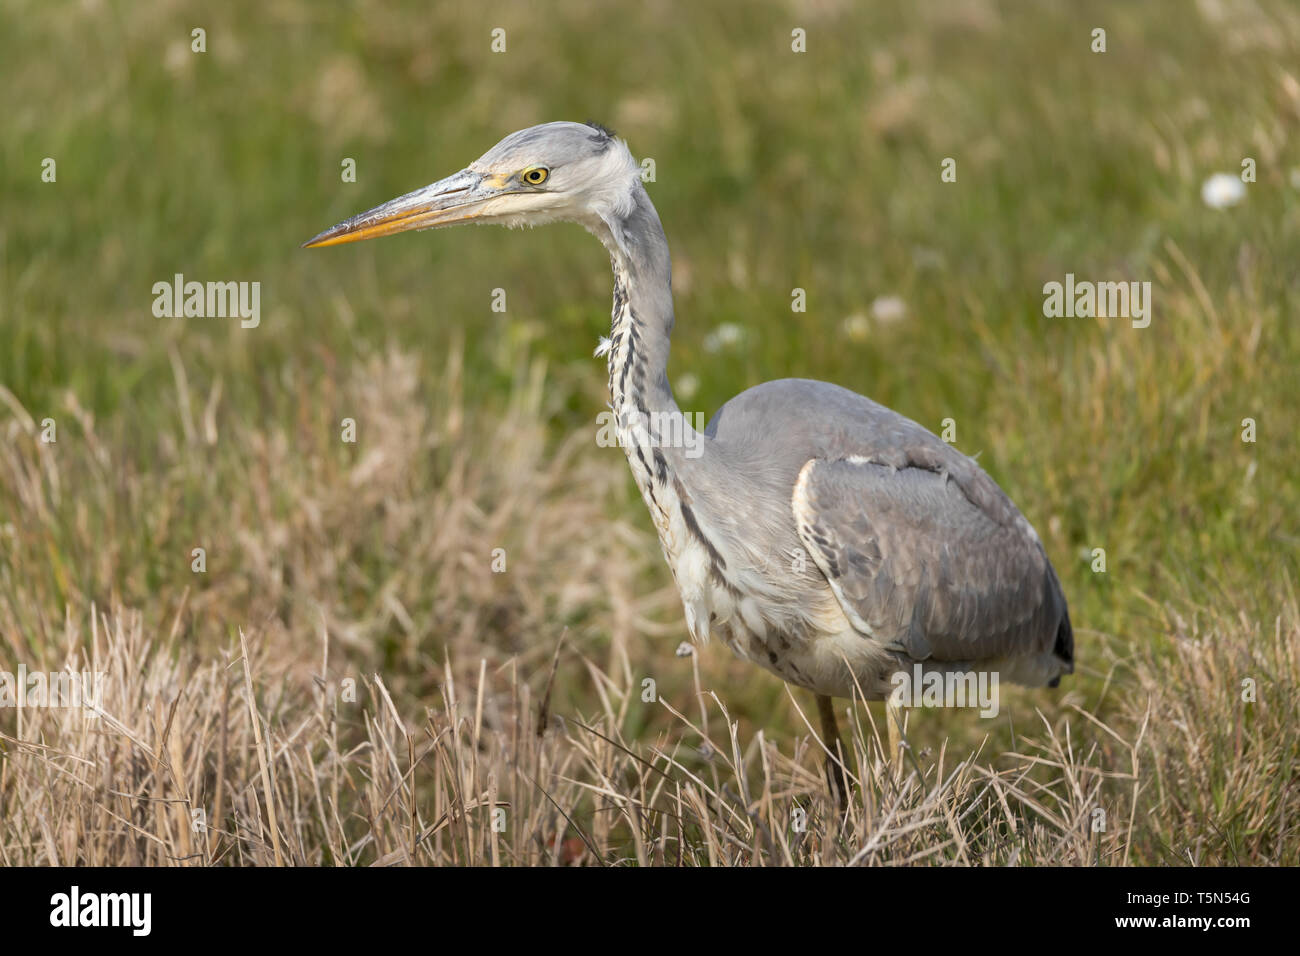 Grey Heron at Cley Marshes - Stock Image